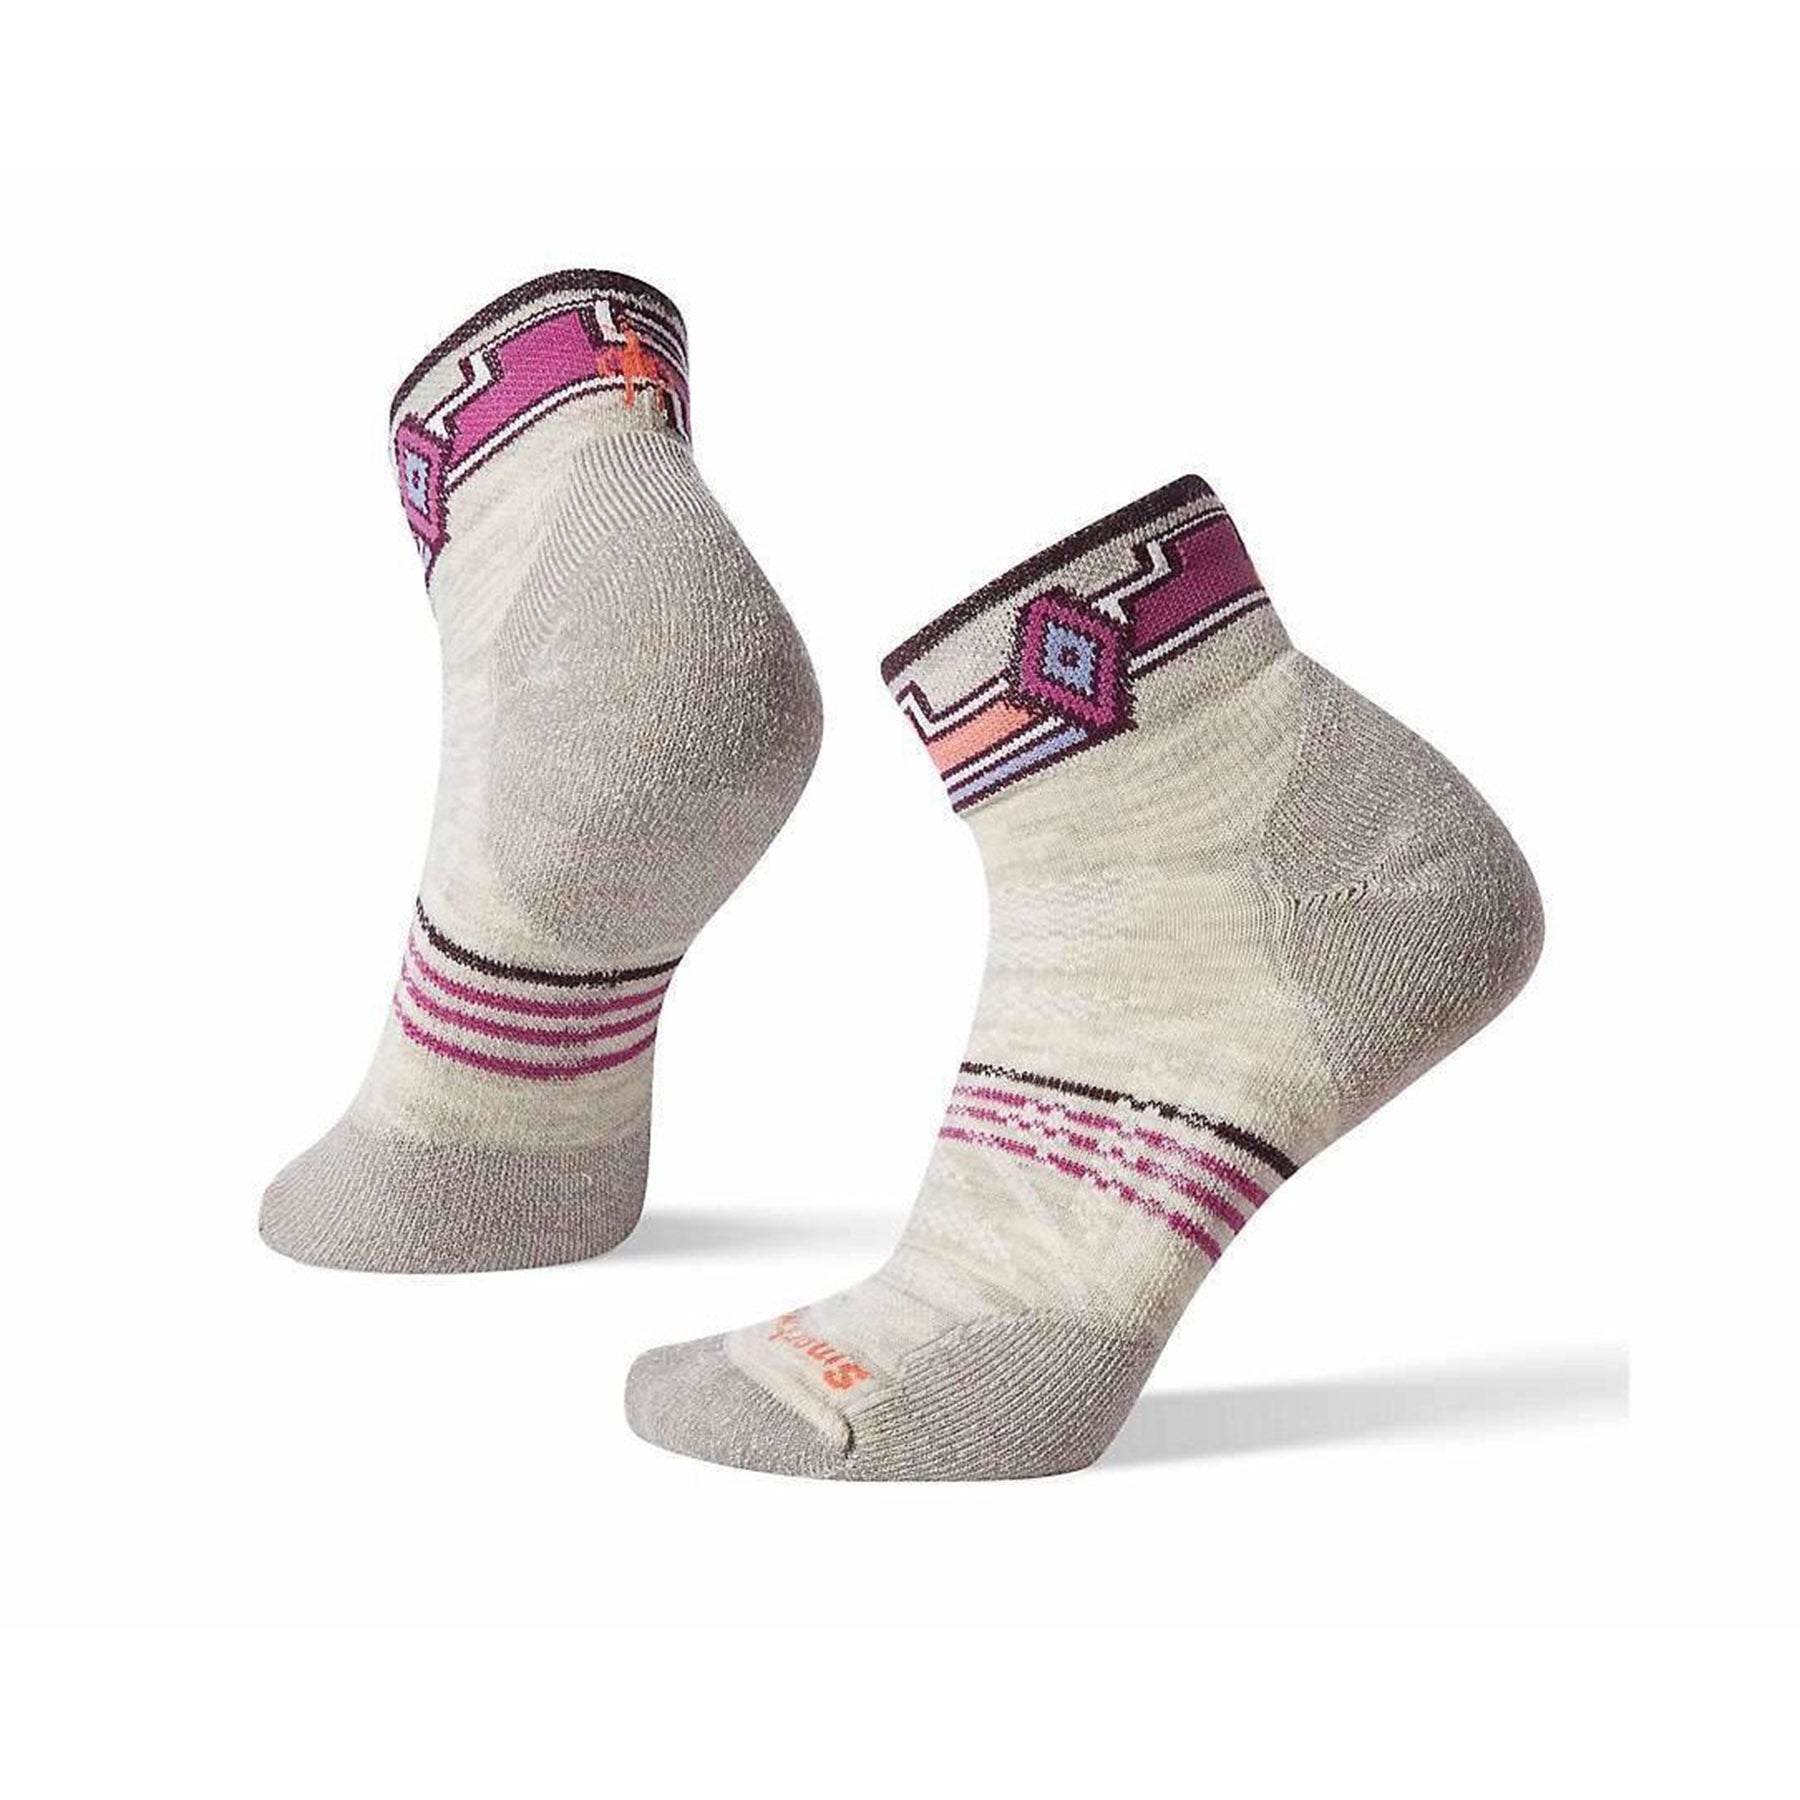 women's smartwool phd outdoor light pattern hiking mini socks in ash